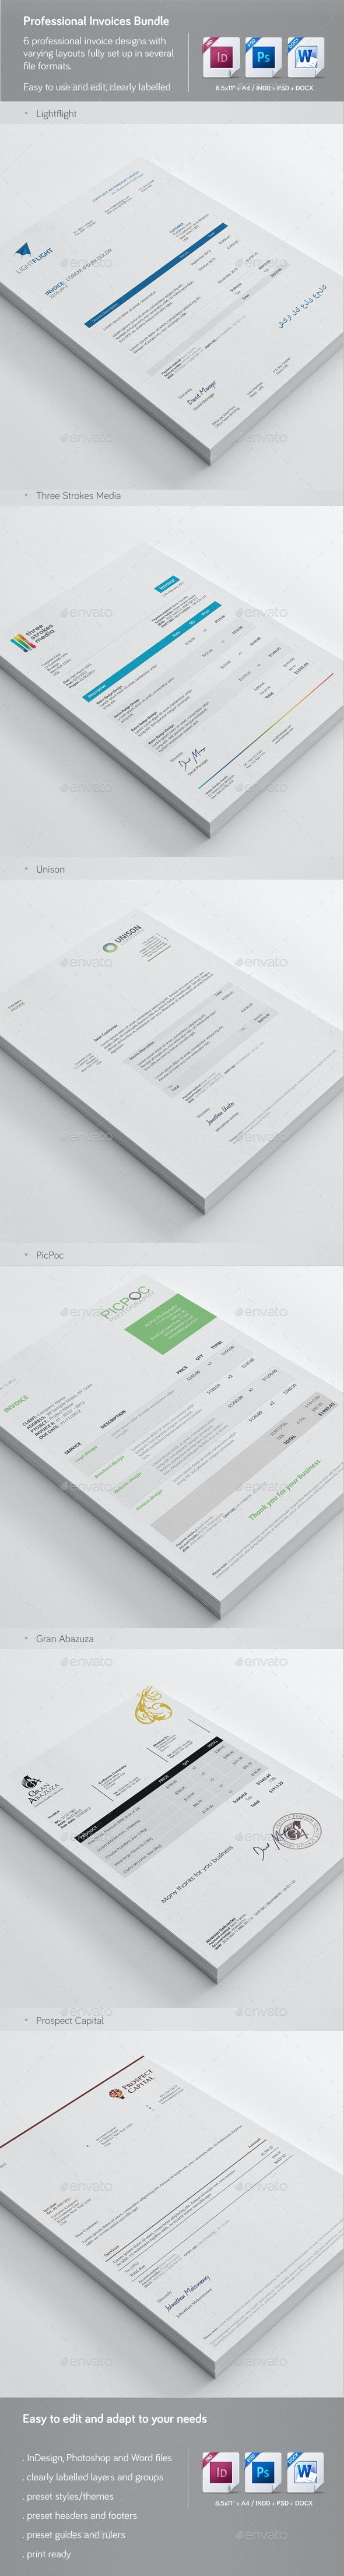 Professional Invoice Templates Bundle 1 - Proposals & Invoices Stationery